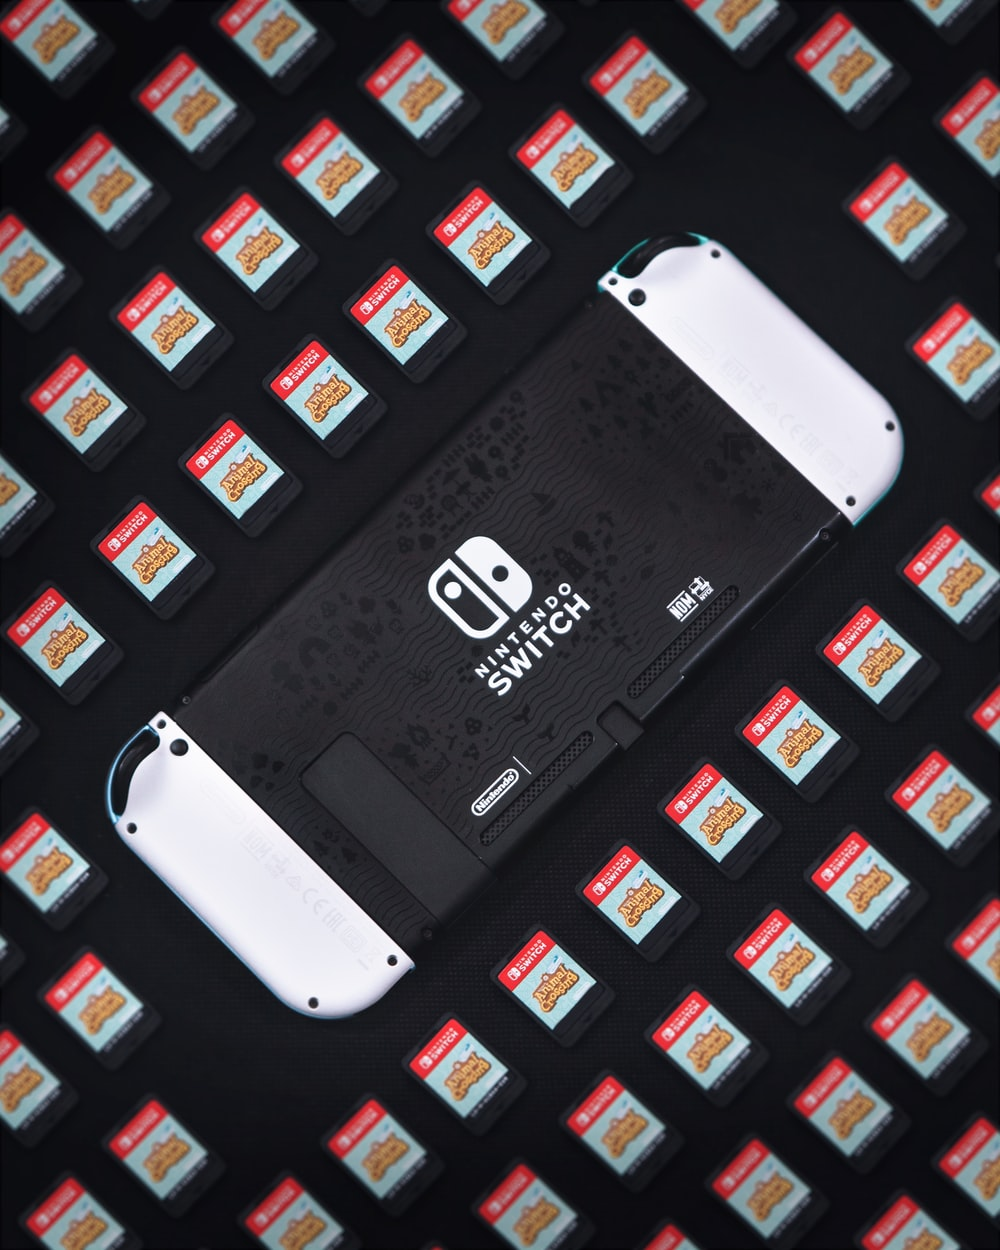 white and black smartphone on black and blue textile